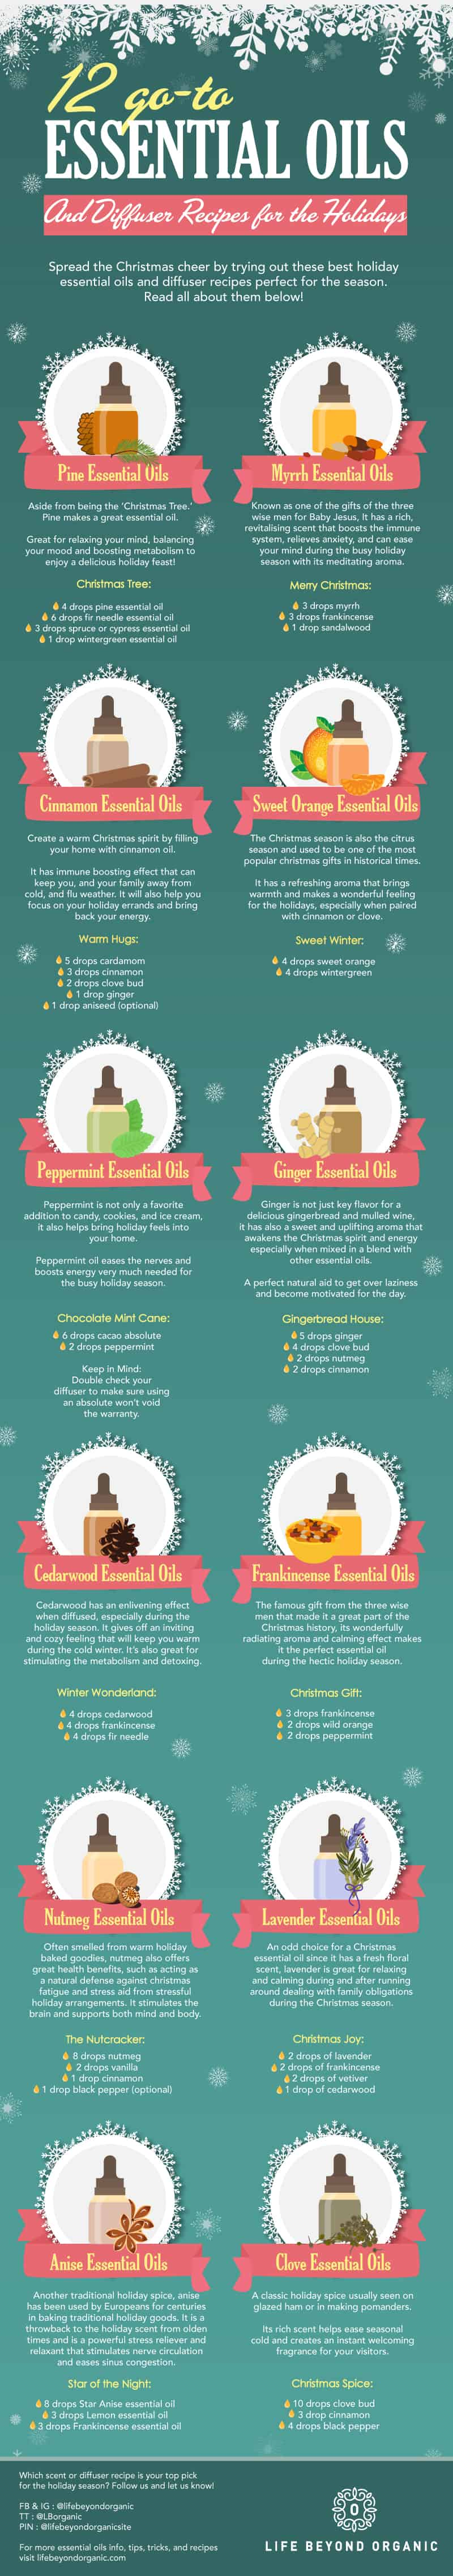 12 Go-To Essential Oils and Diffuser Recipes for the Holidays